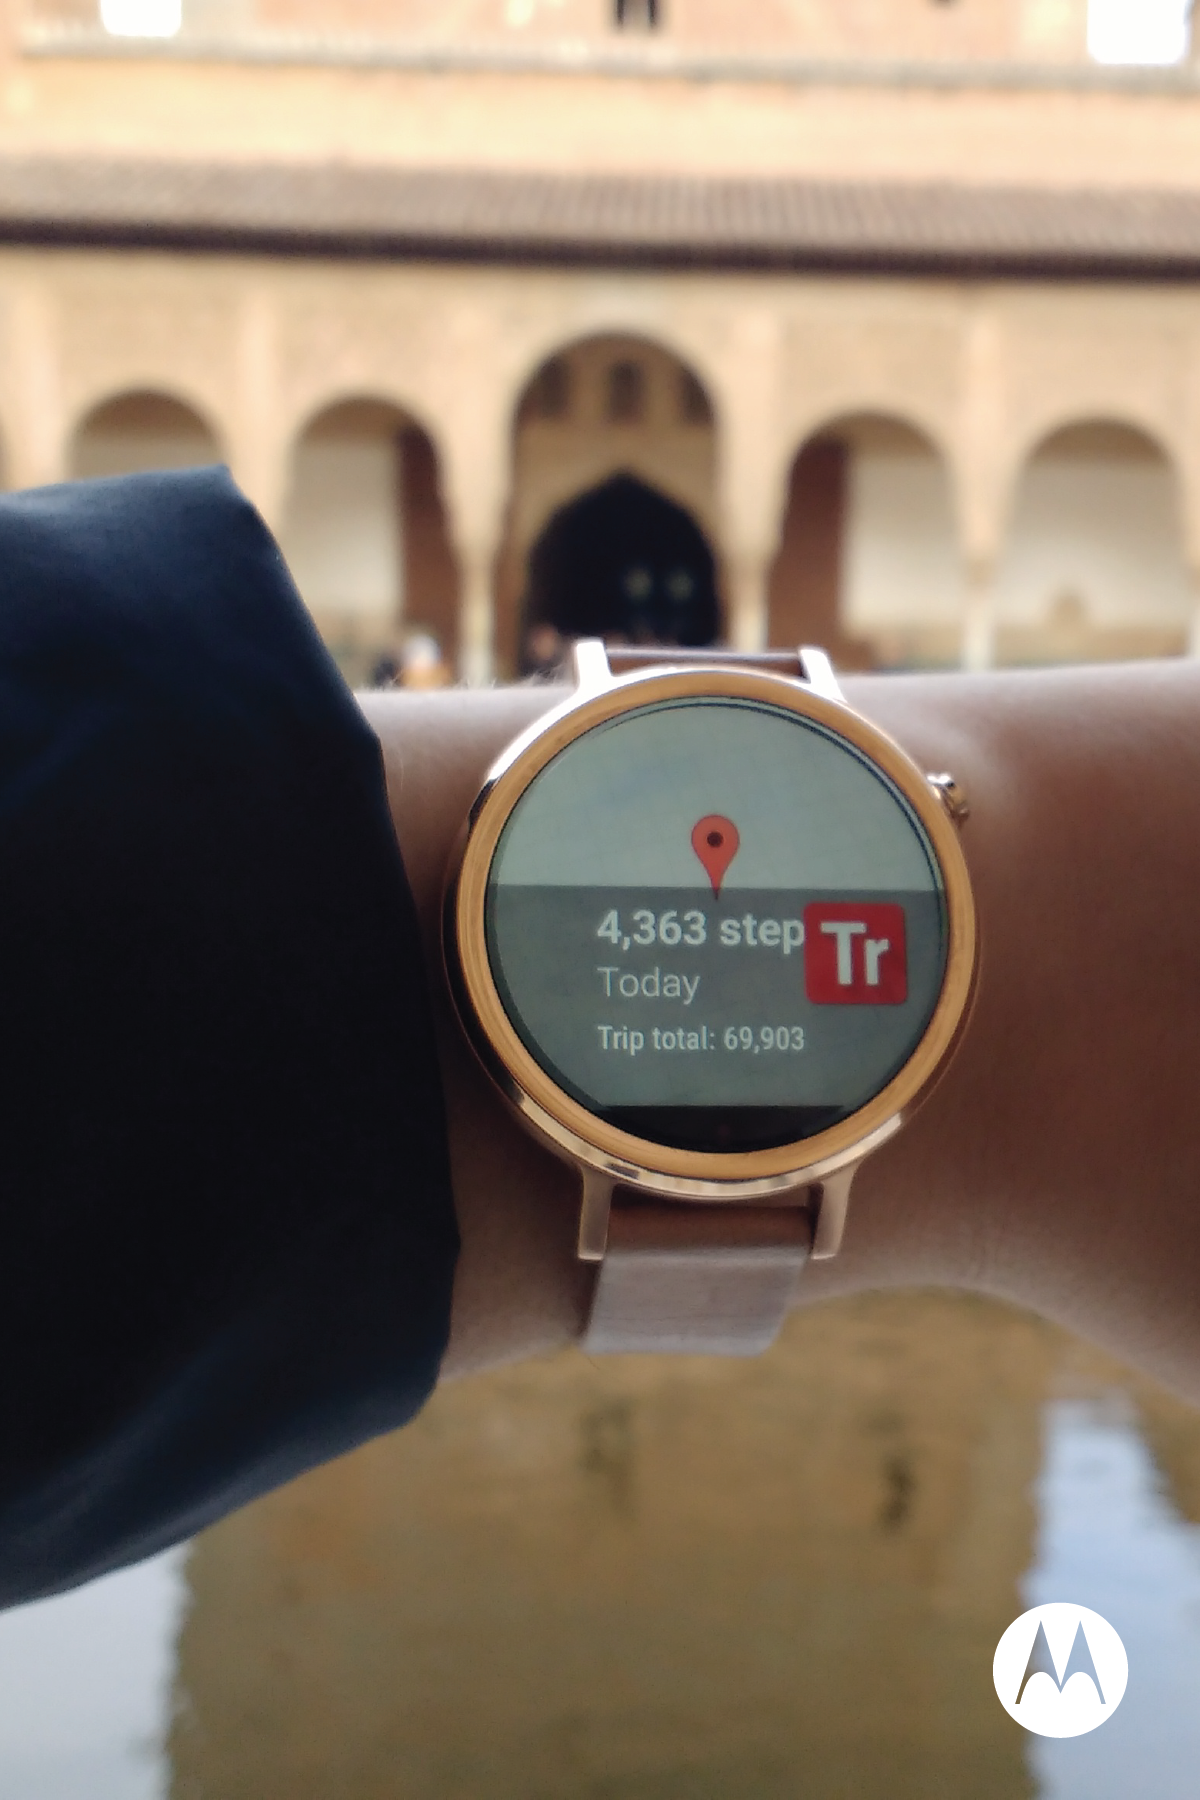 Take the Moto 360 watch along on your next adventure and